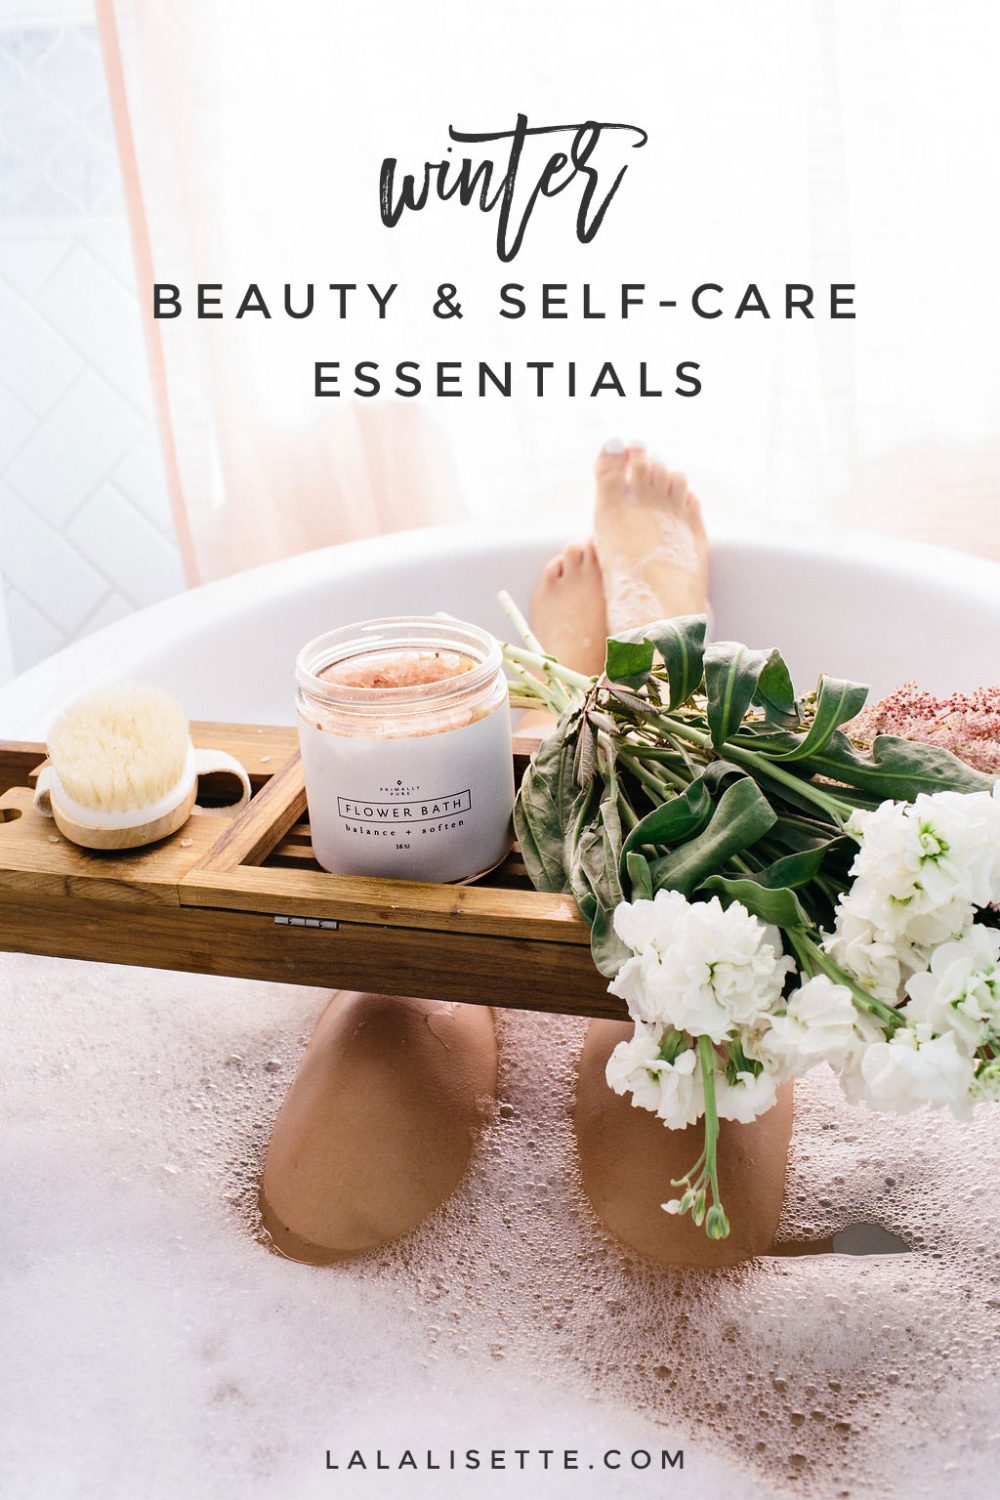 Winter Beauty & Self-Care Essentials #selfcare #saferbeauty #cleanbeauty #beautycounter